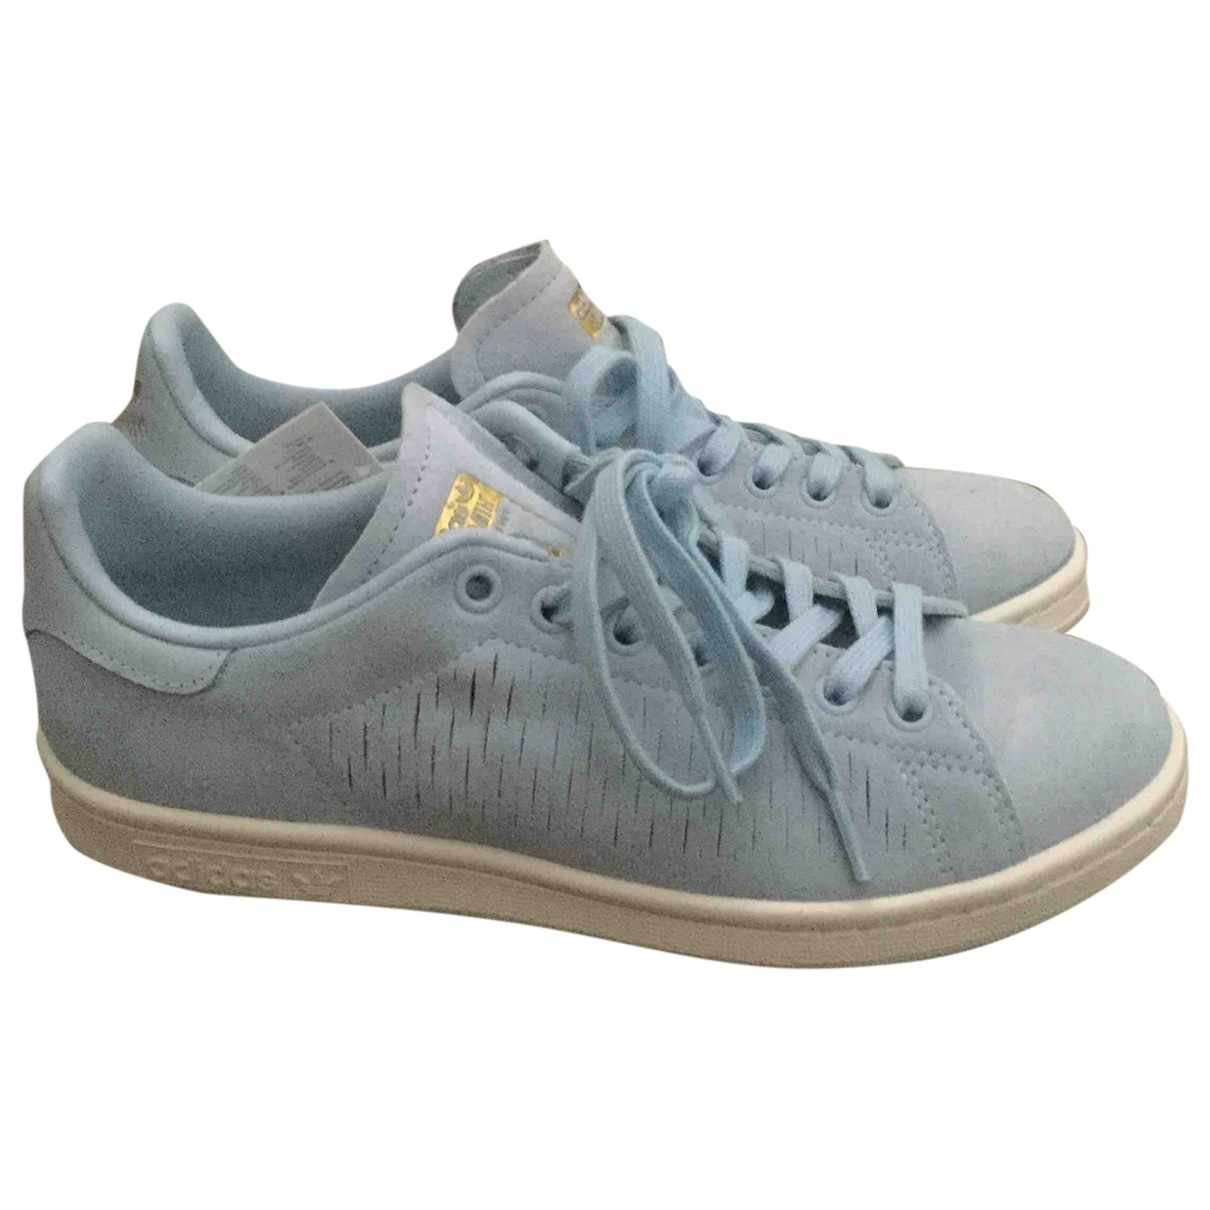 Adidas Stan Smith Blue Suede Trainers for Women 6 UK